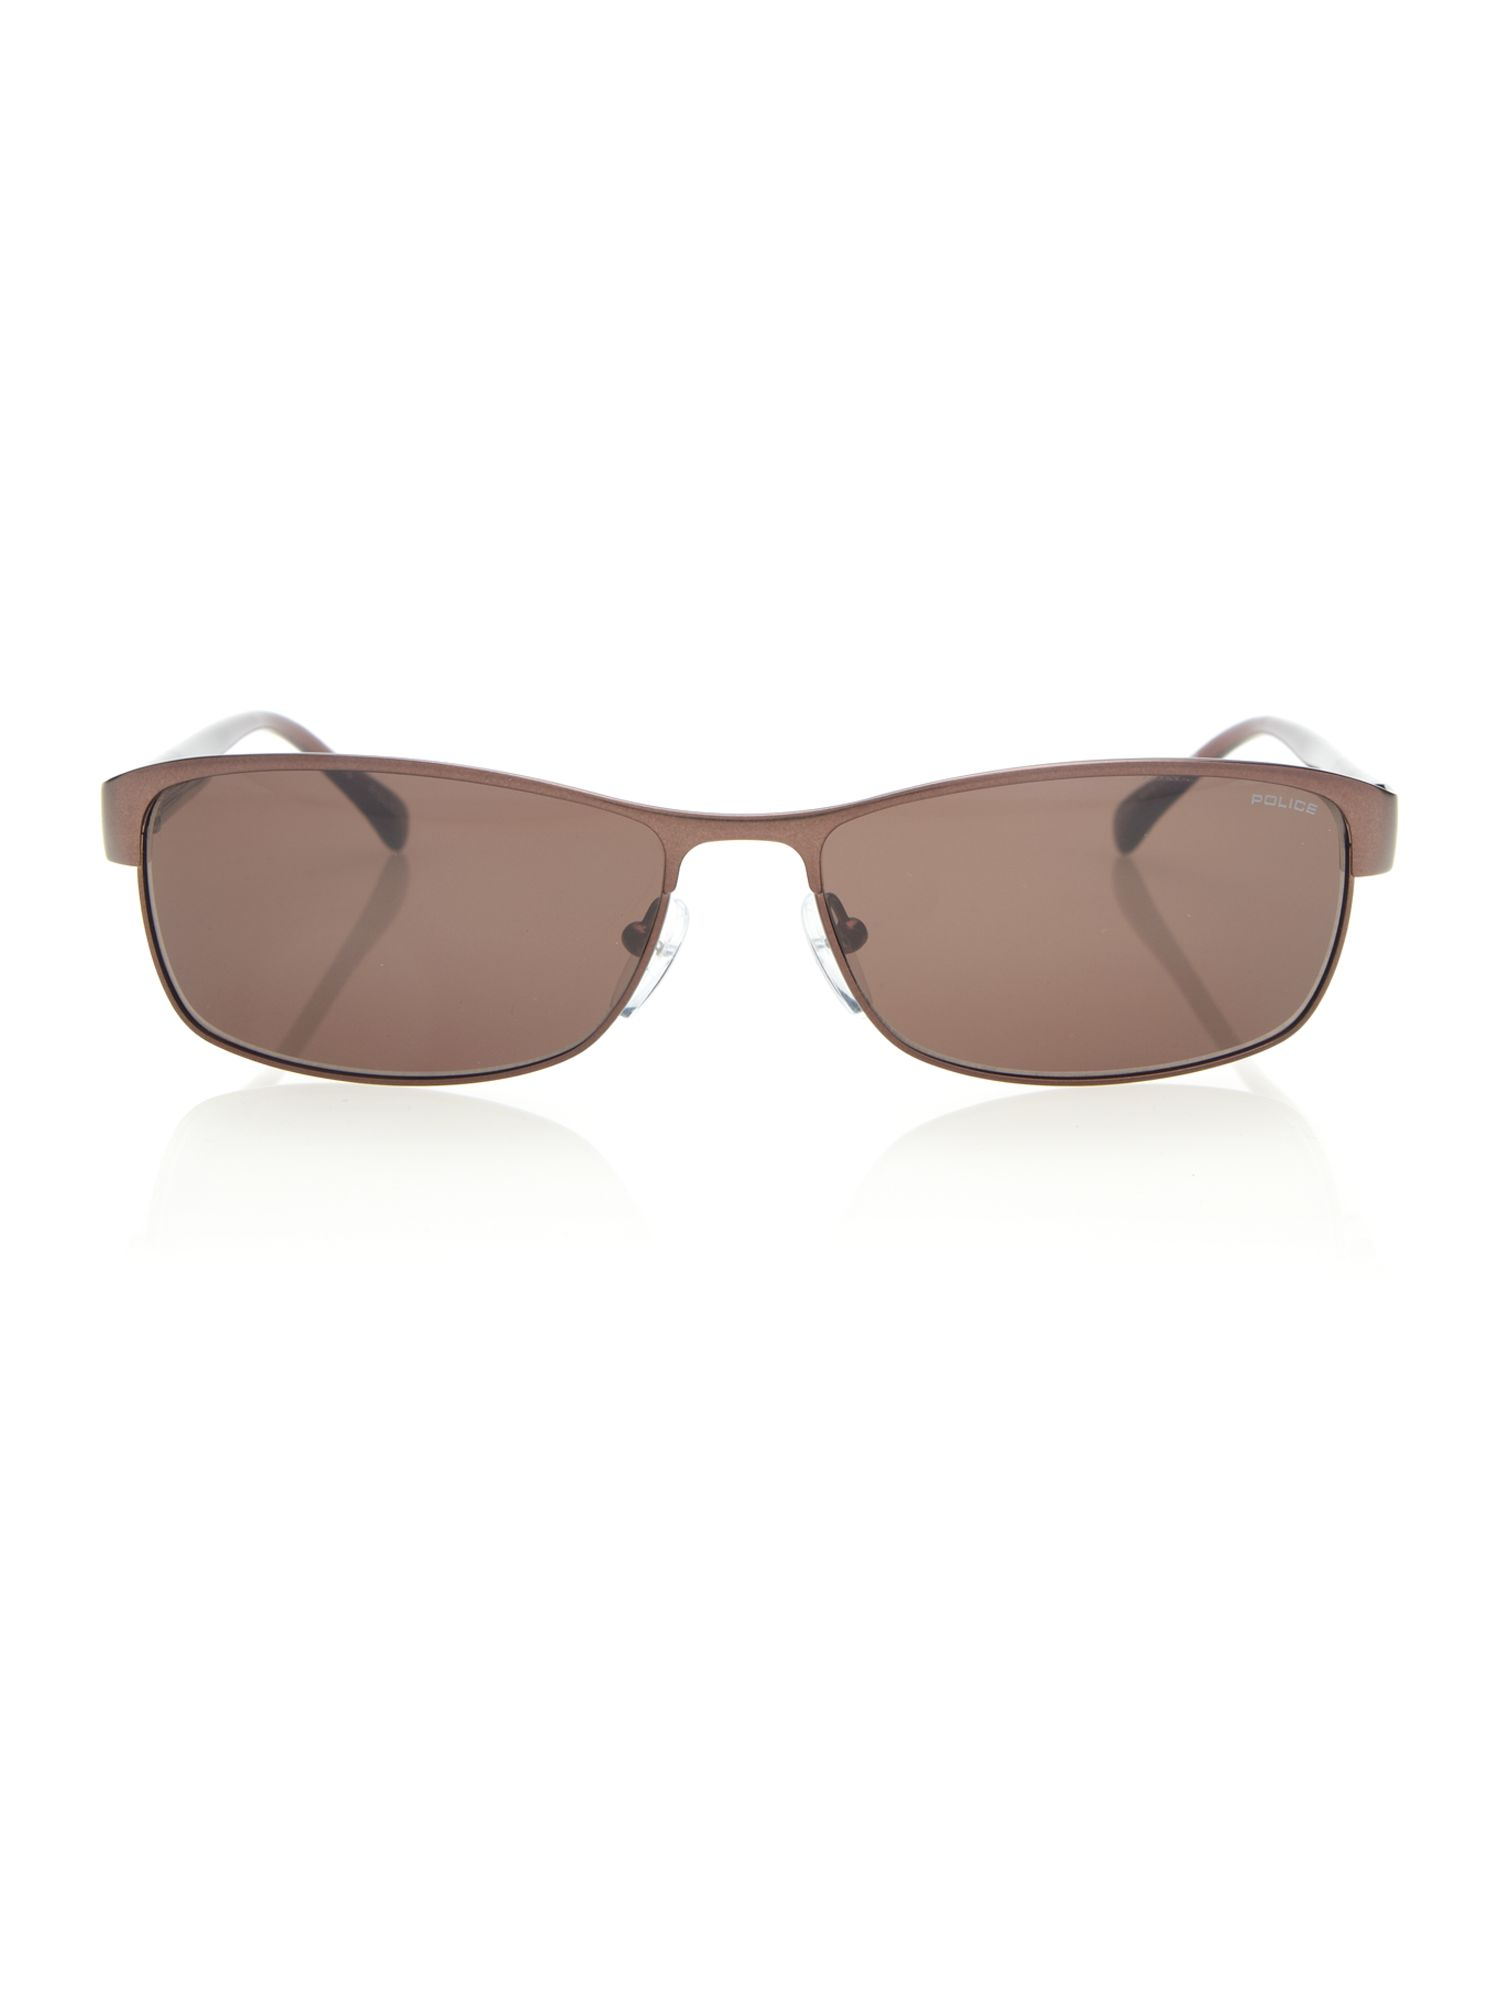 Police Police Sunglasses in Bronze (Grey) for Men